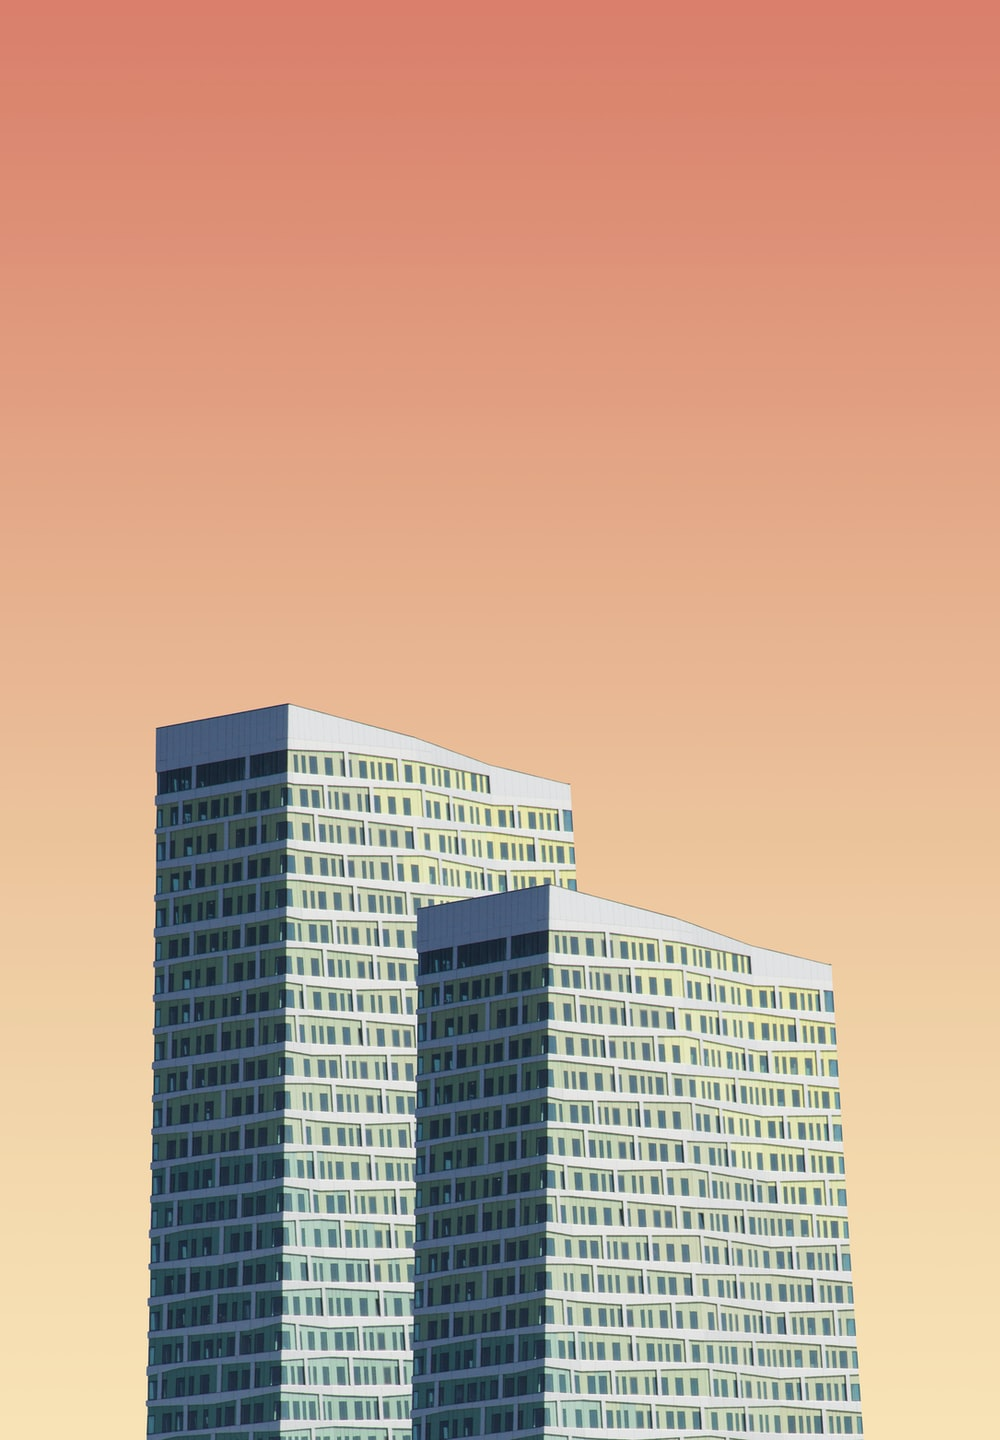 two gray high-rise building illustrations